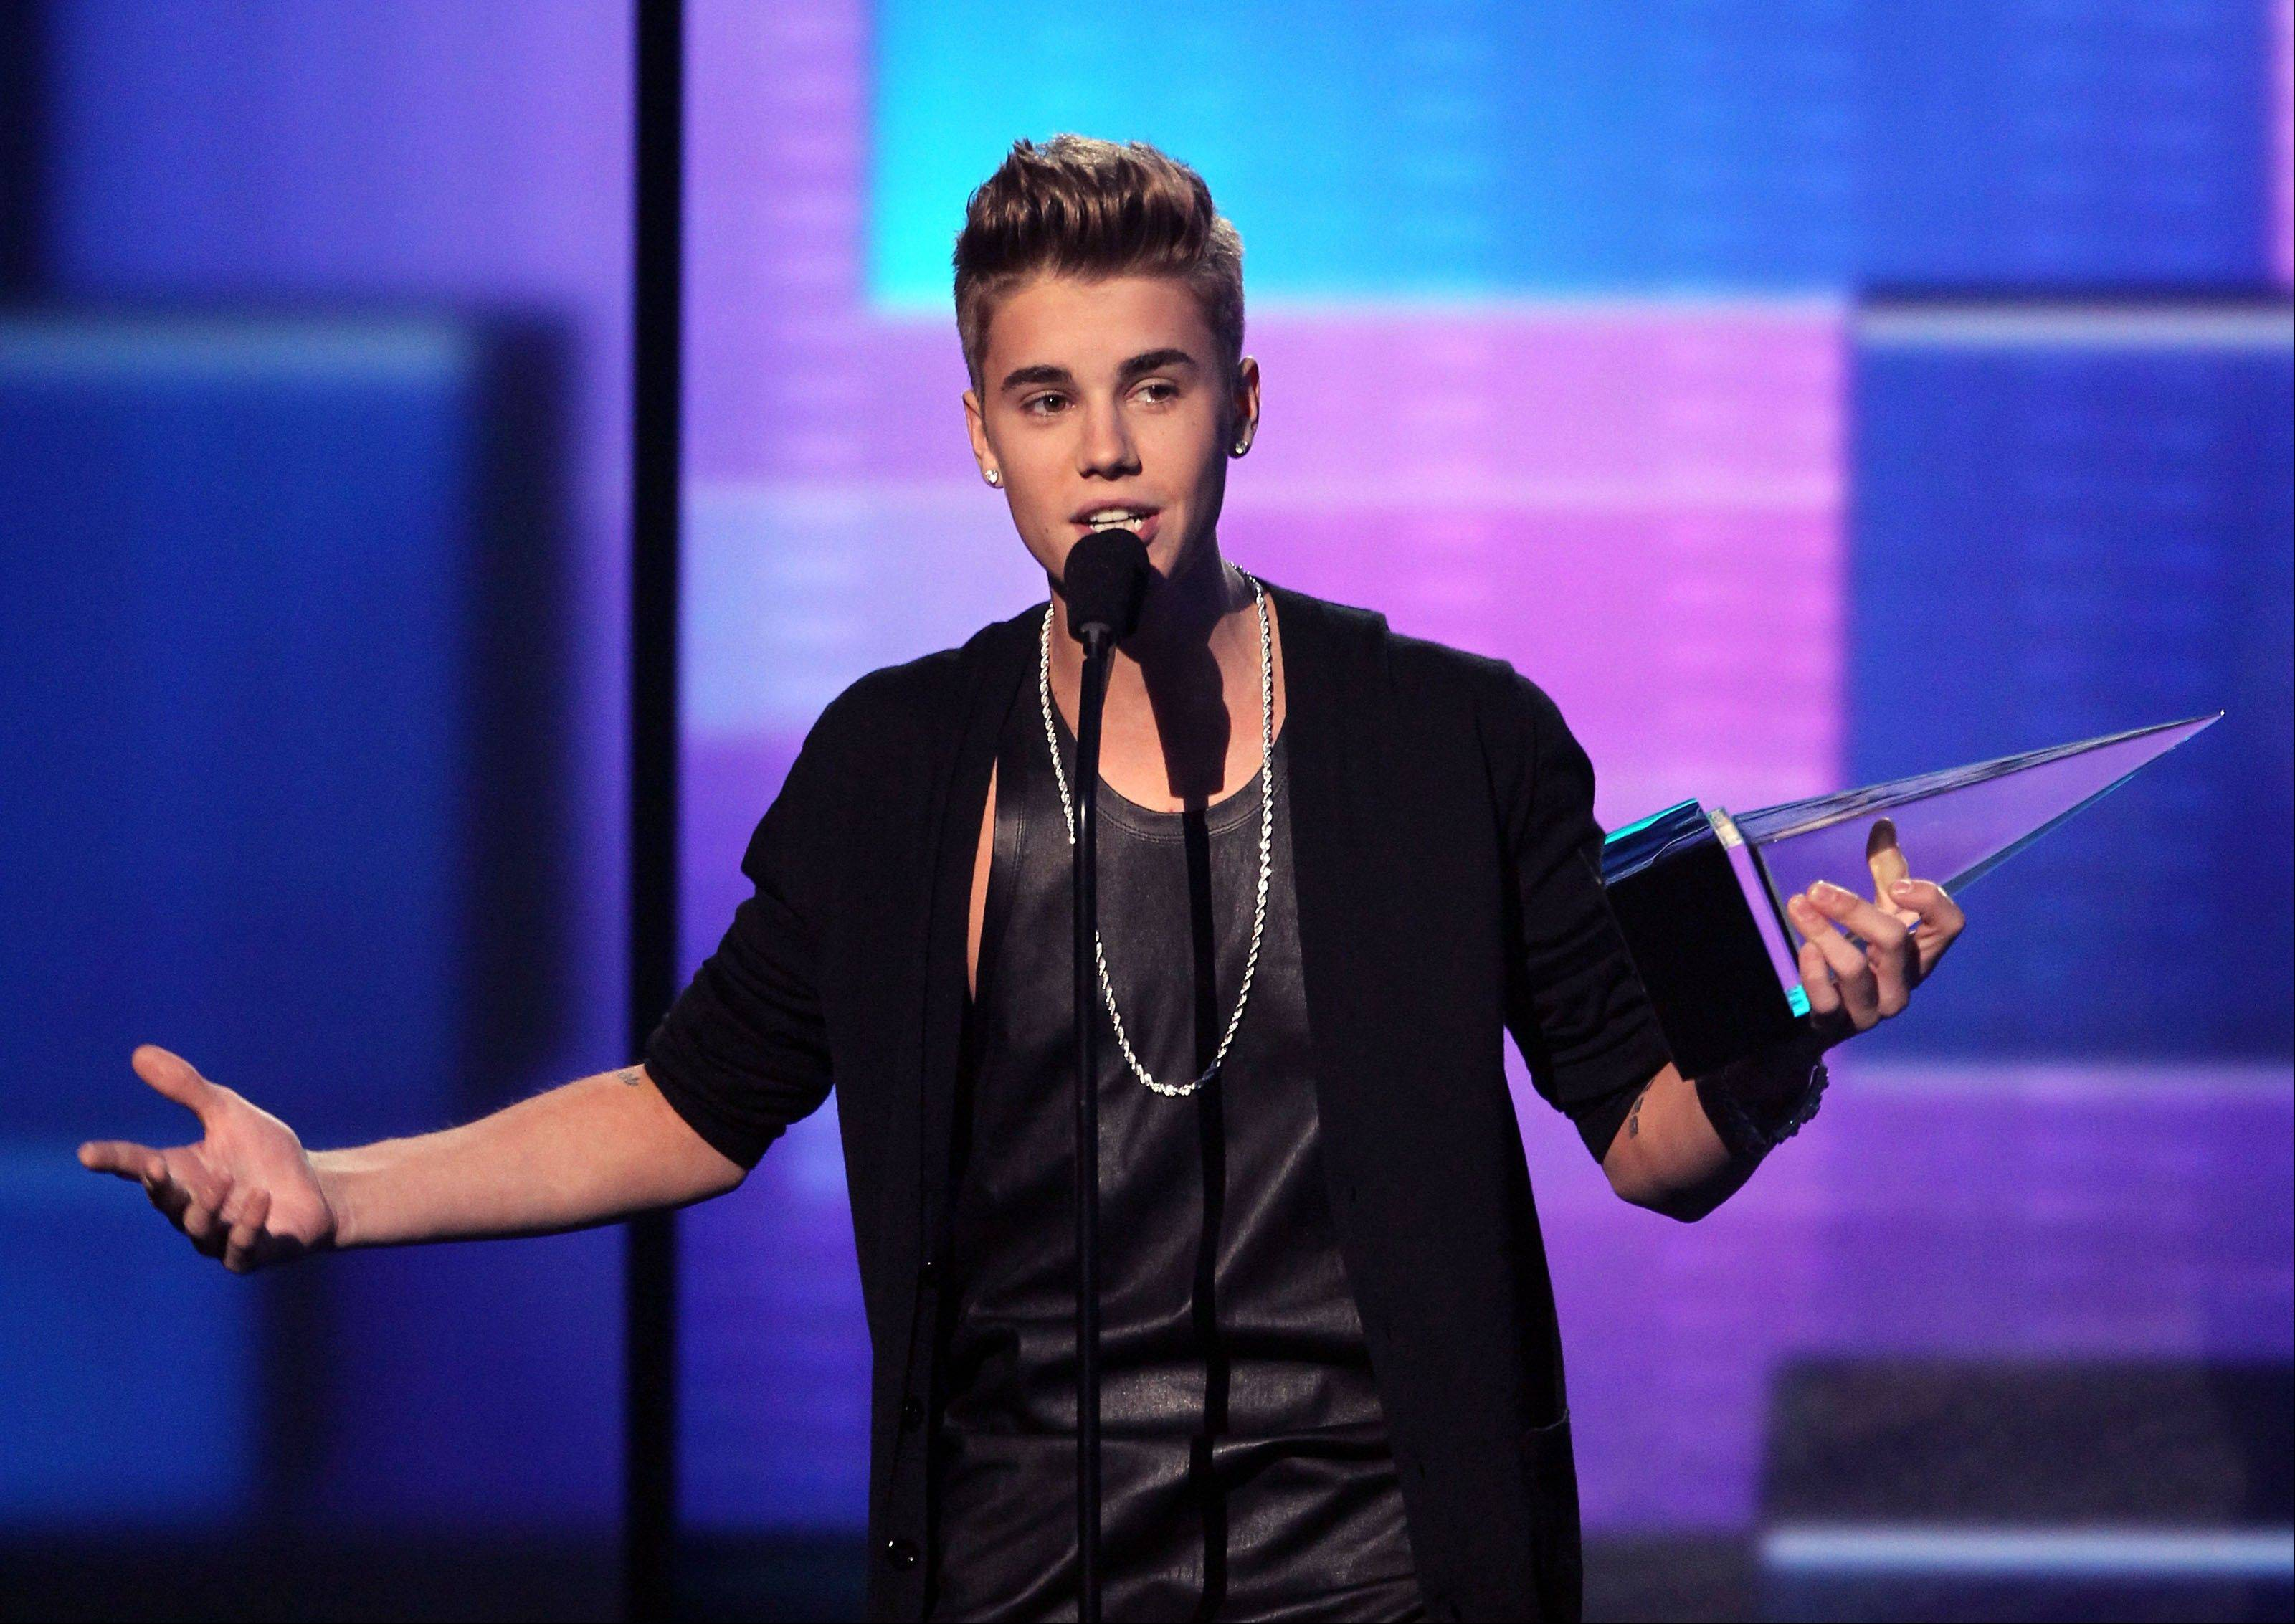 Justin Bieber accepts the award for favorite male artist - pop/rock.